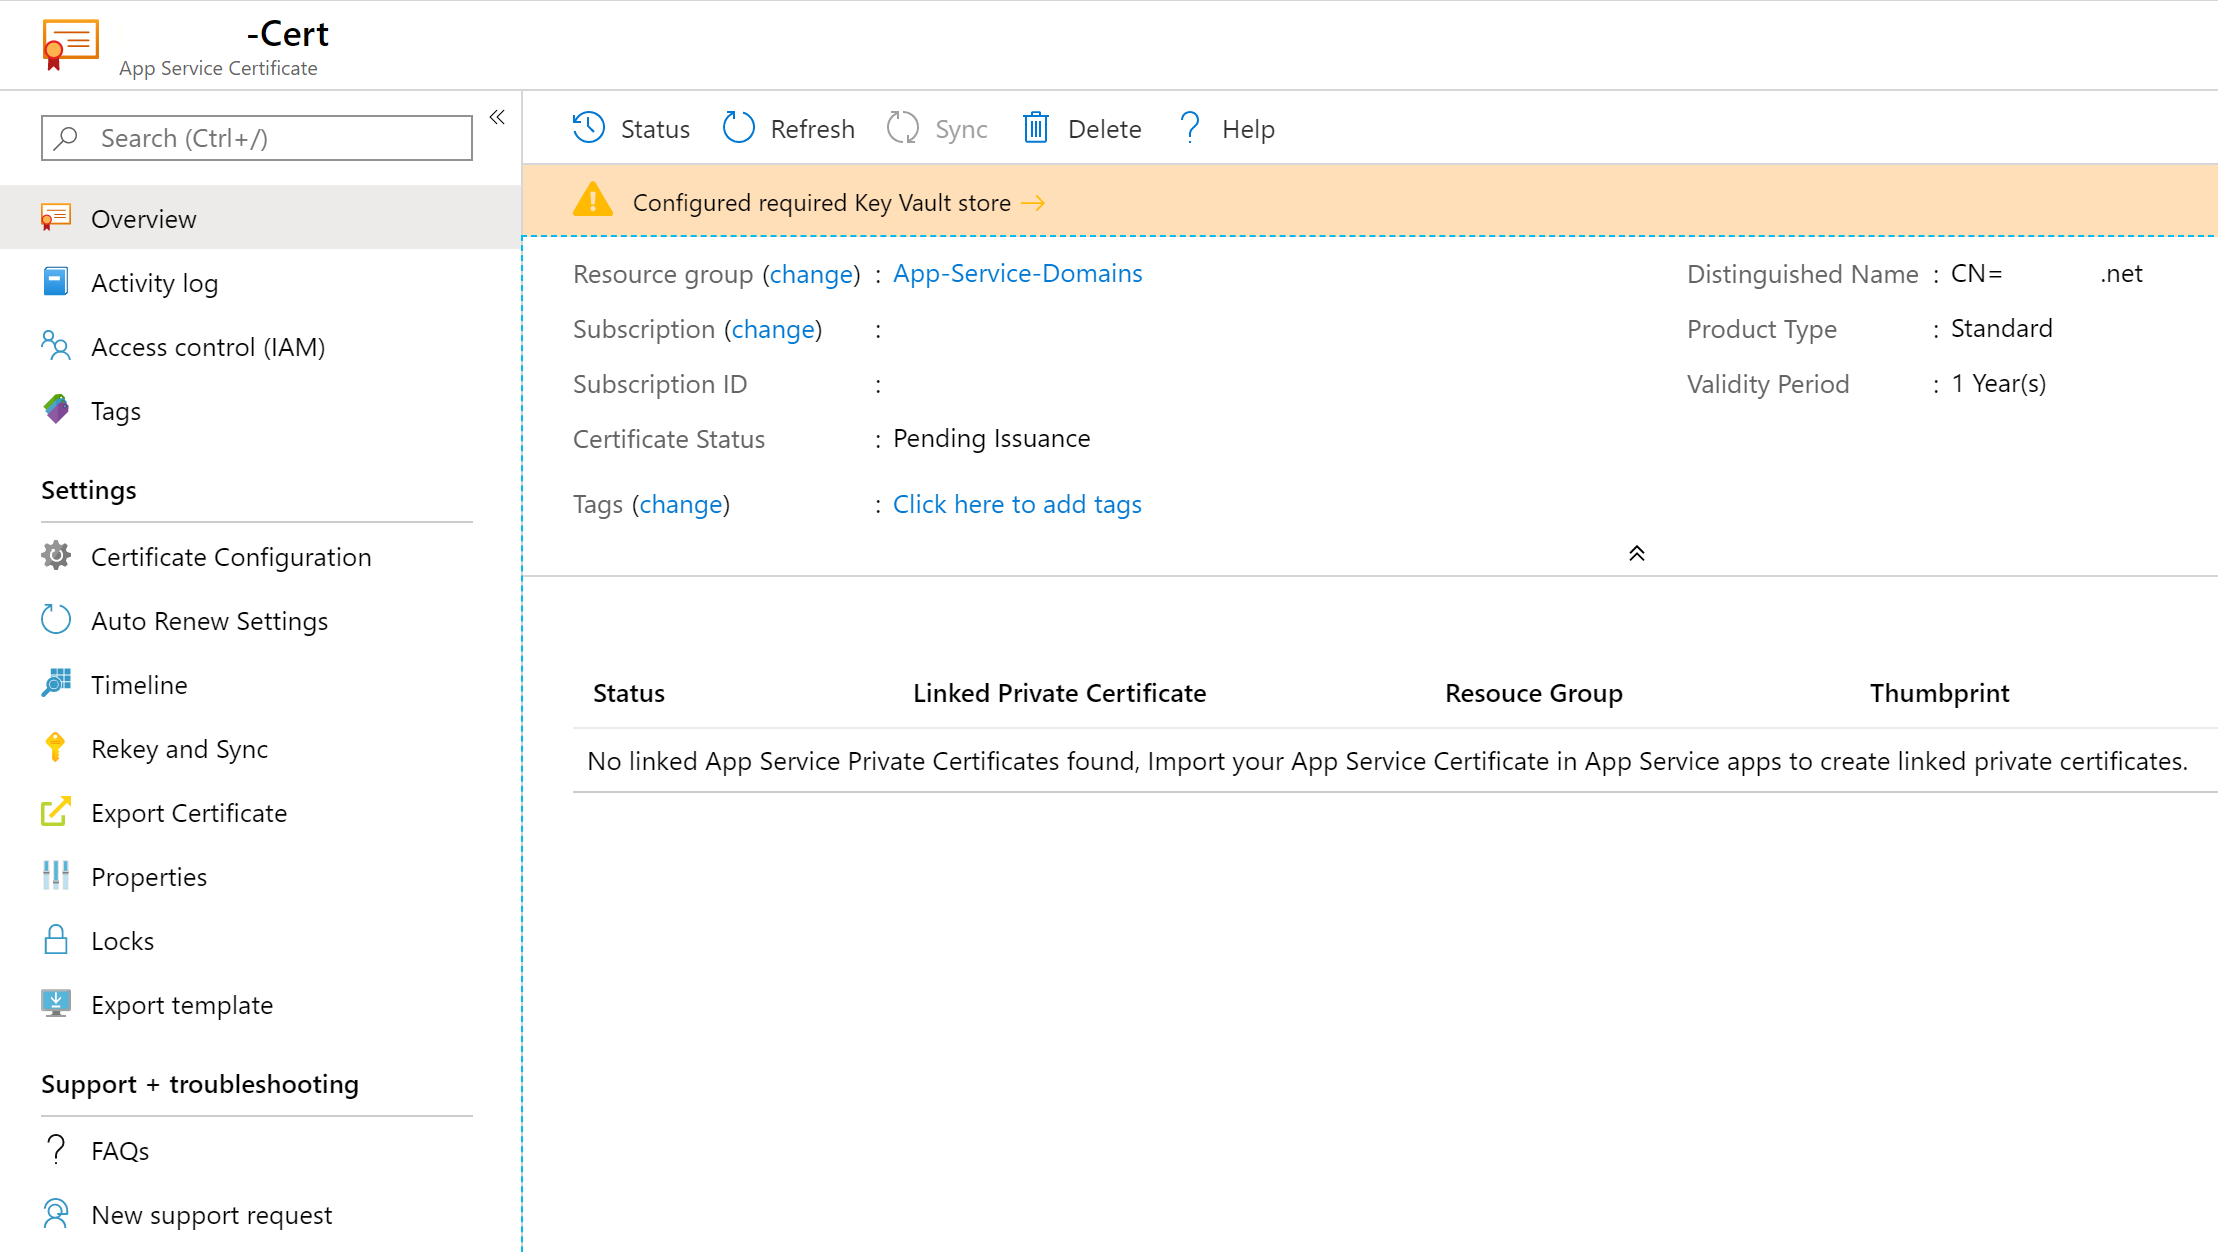 App Service Certificate requires validation